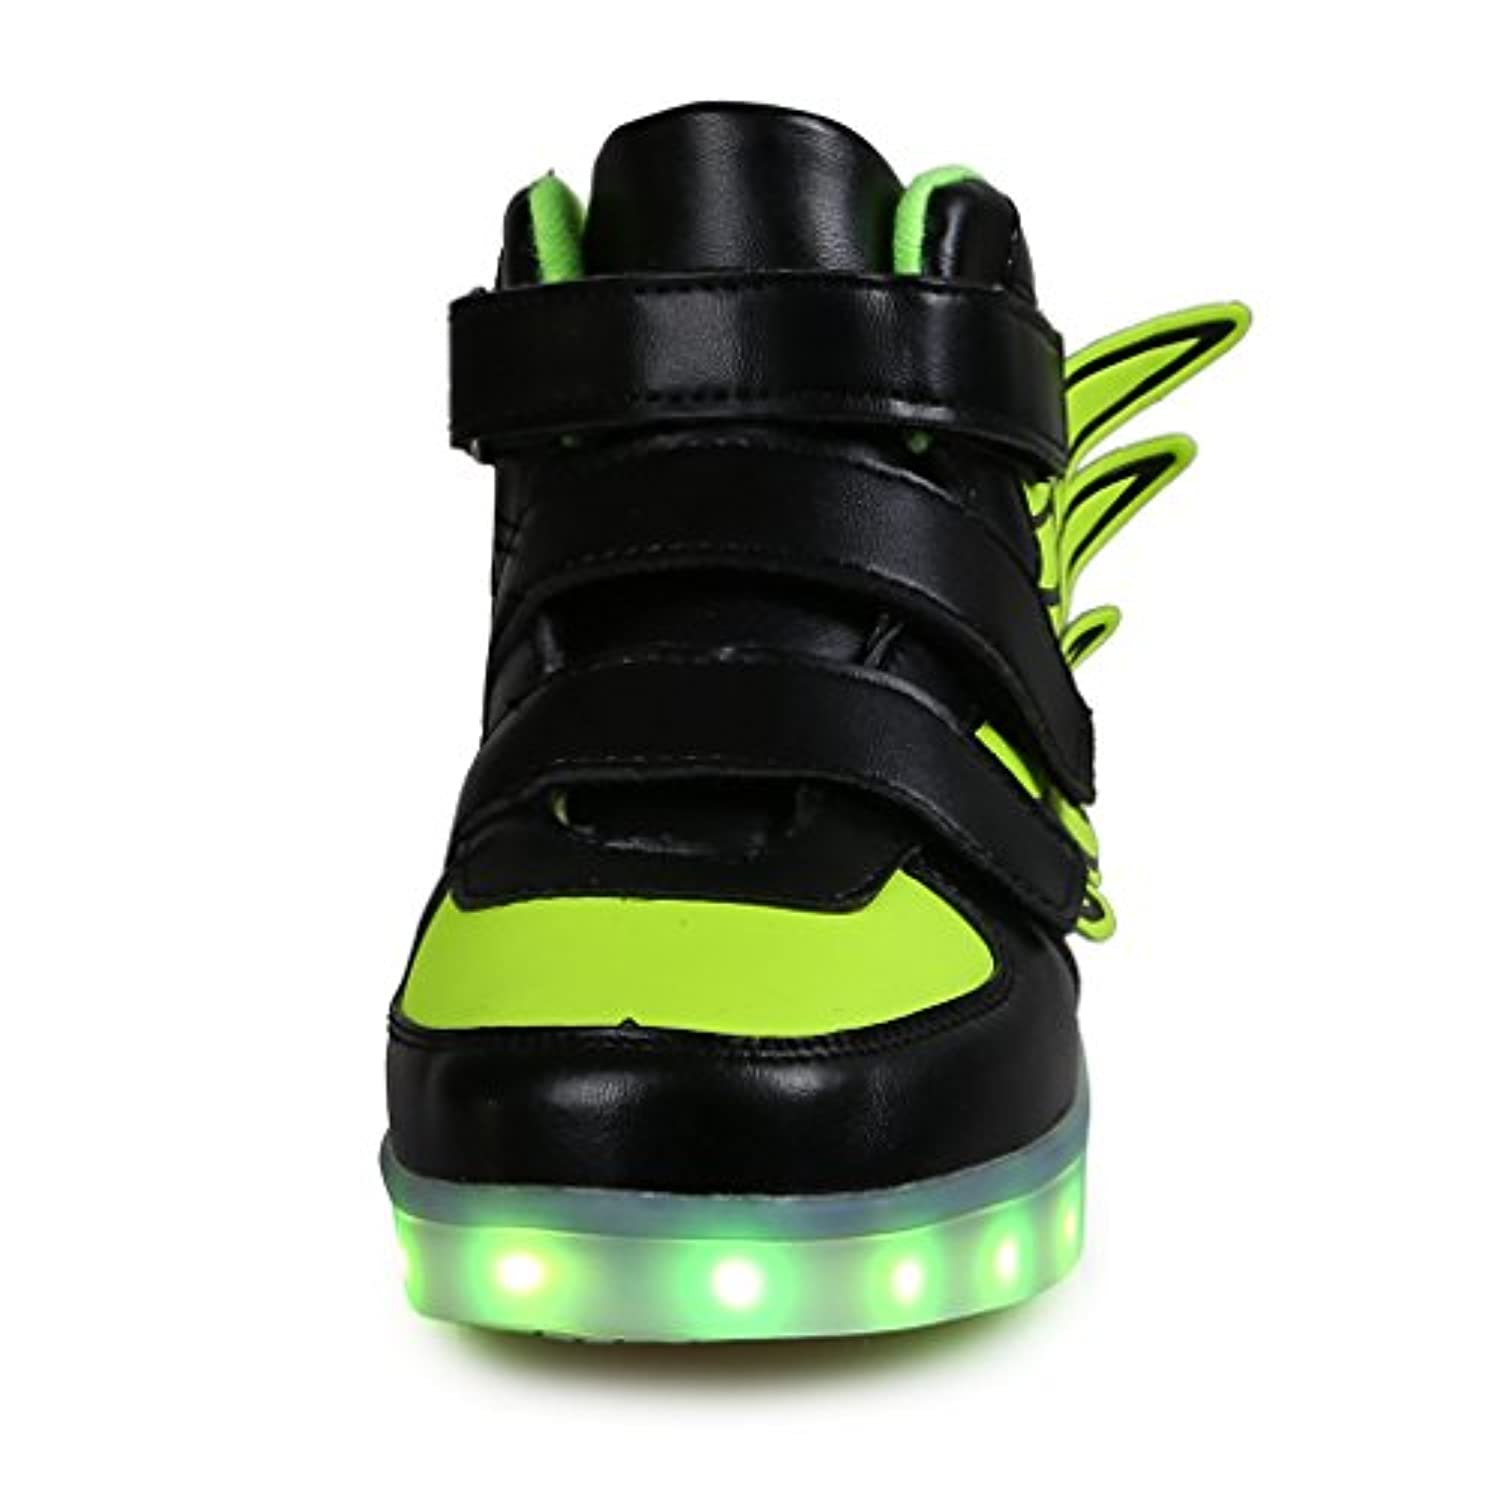 SAGUARO Unisex Kids' USB Rechargeable LED Sport Shoes Flashing Fashion Wing Sneakers Black Size 8